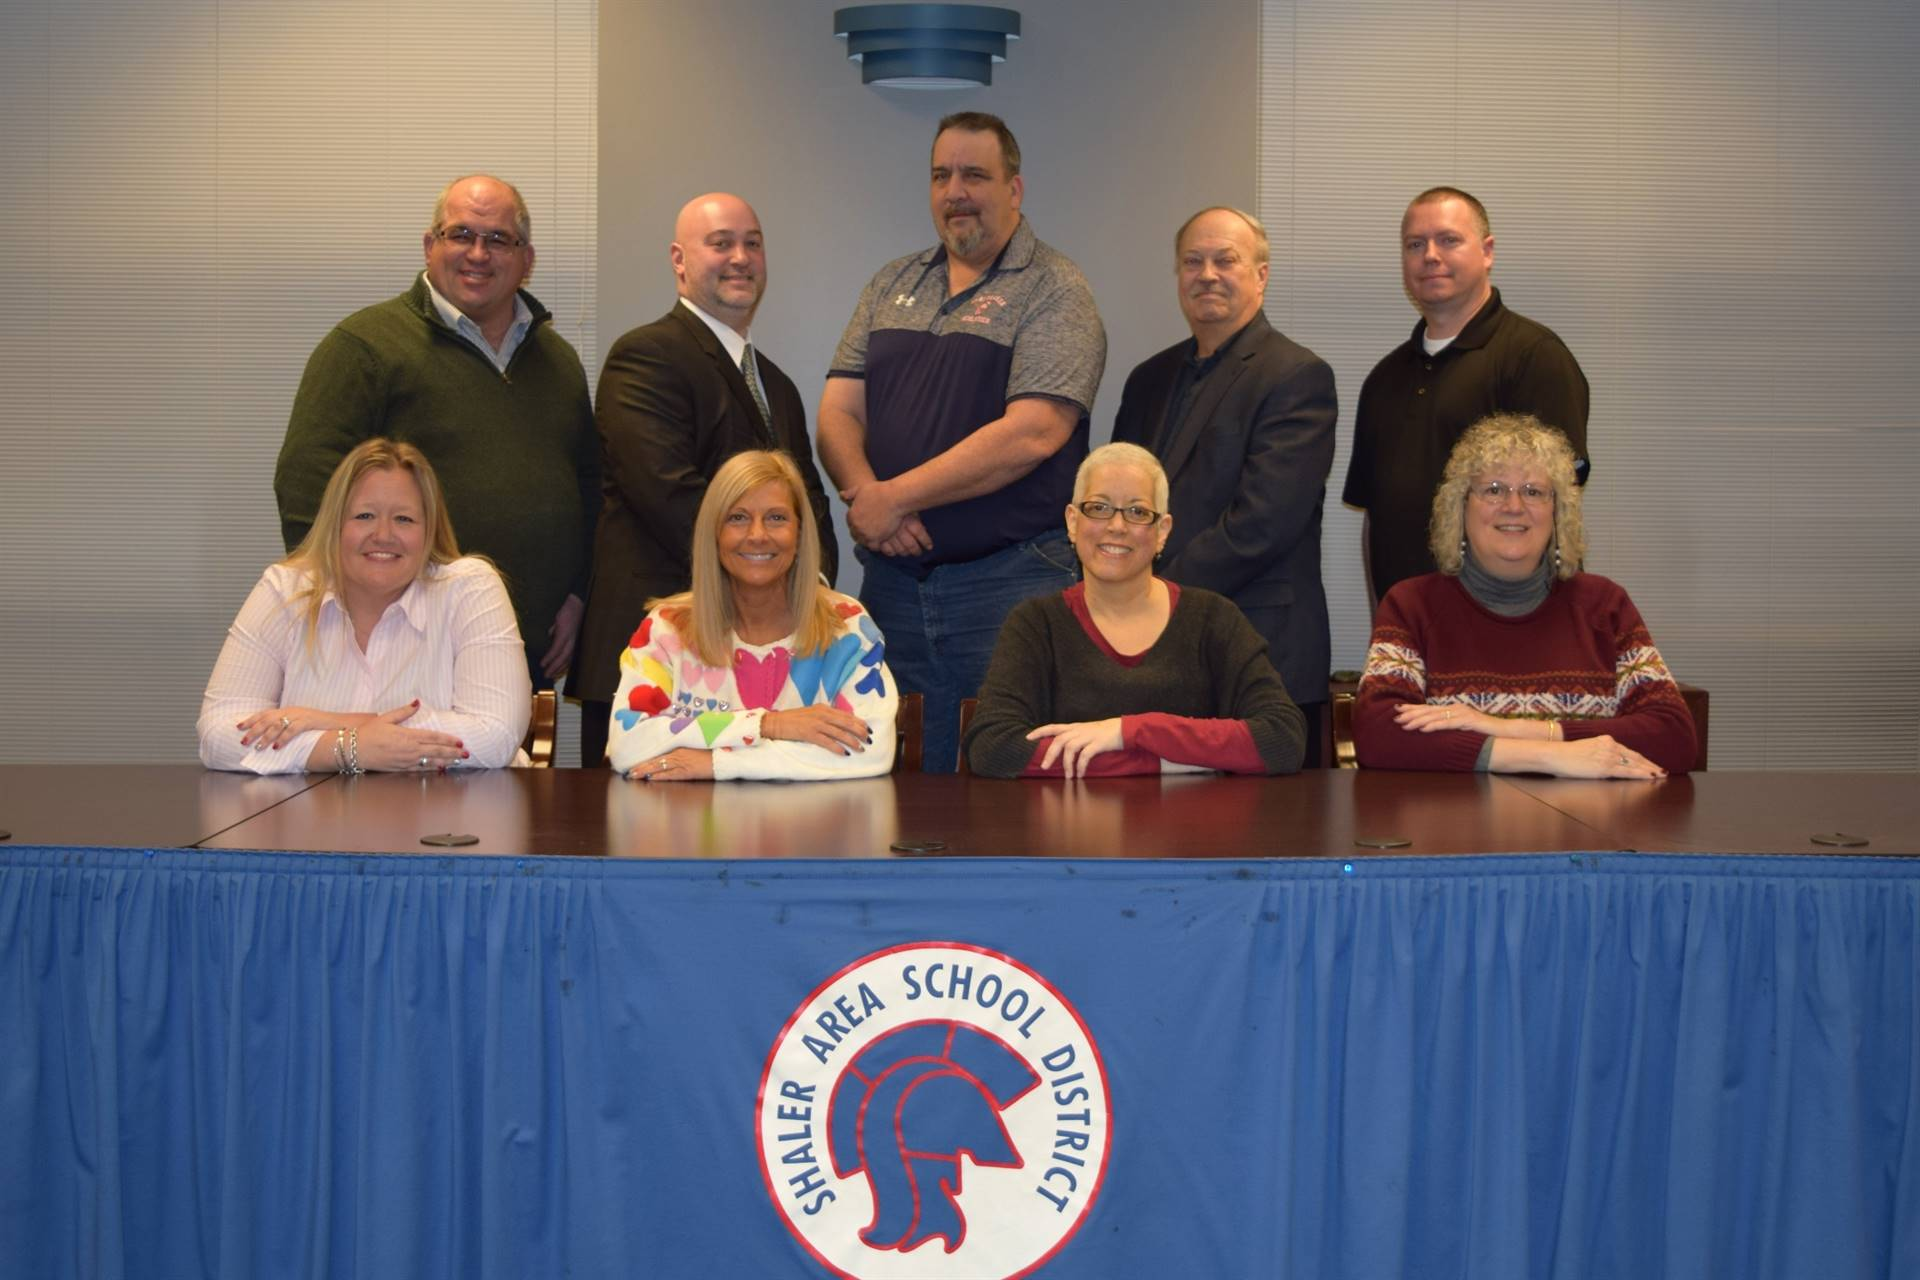 nine school board members at a table